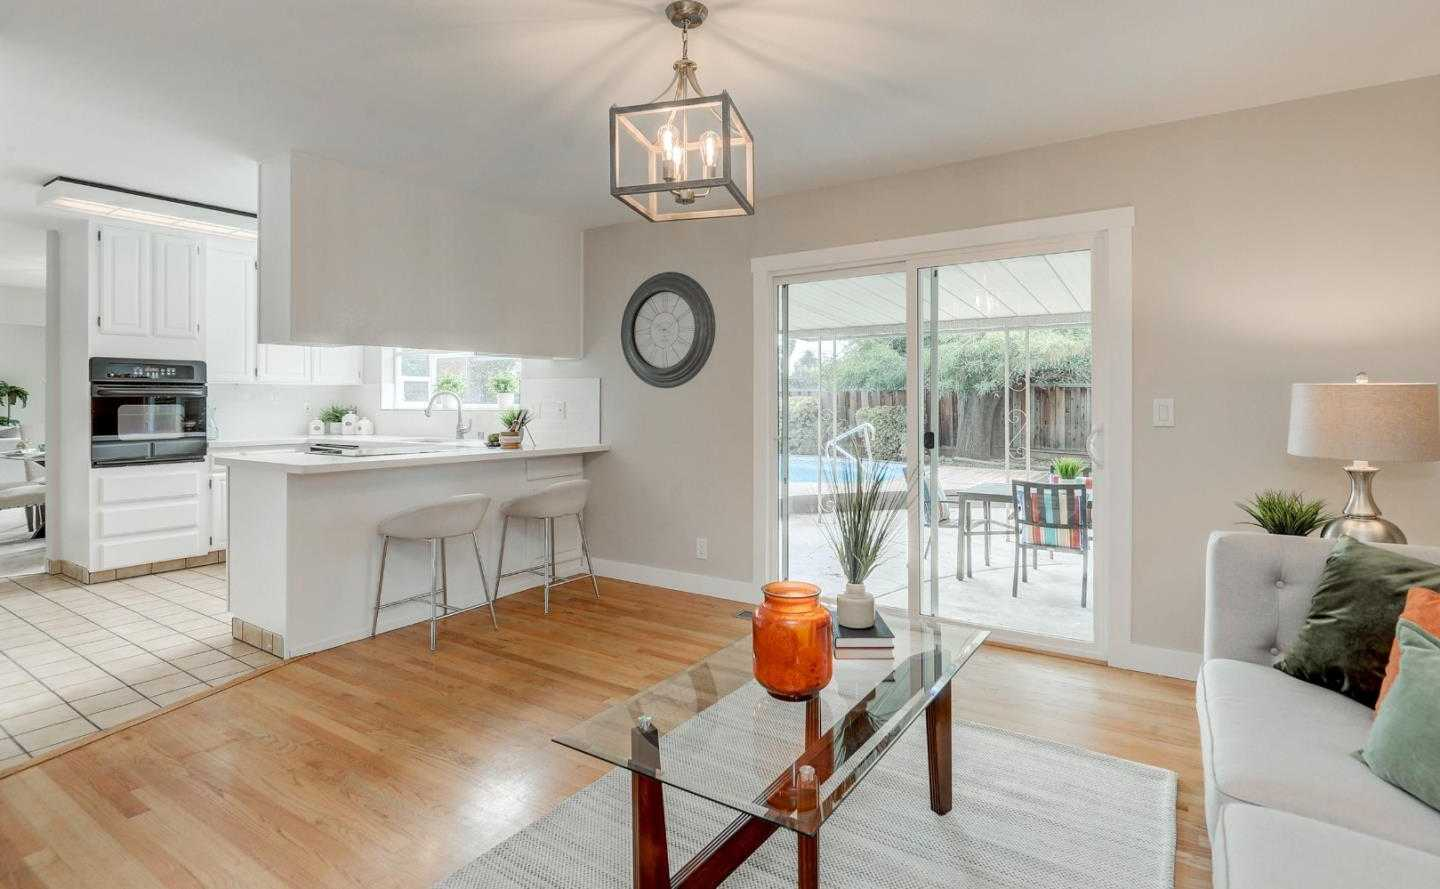 $1,675,000 - 4Br/3Ba -  for Sale in San Jose